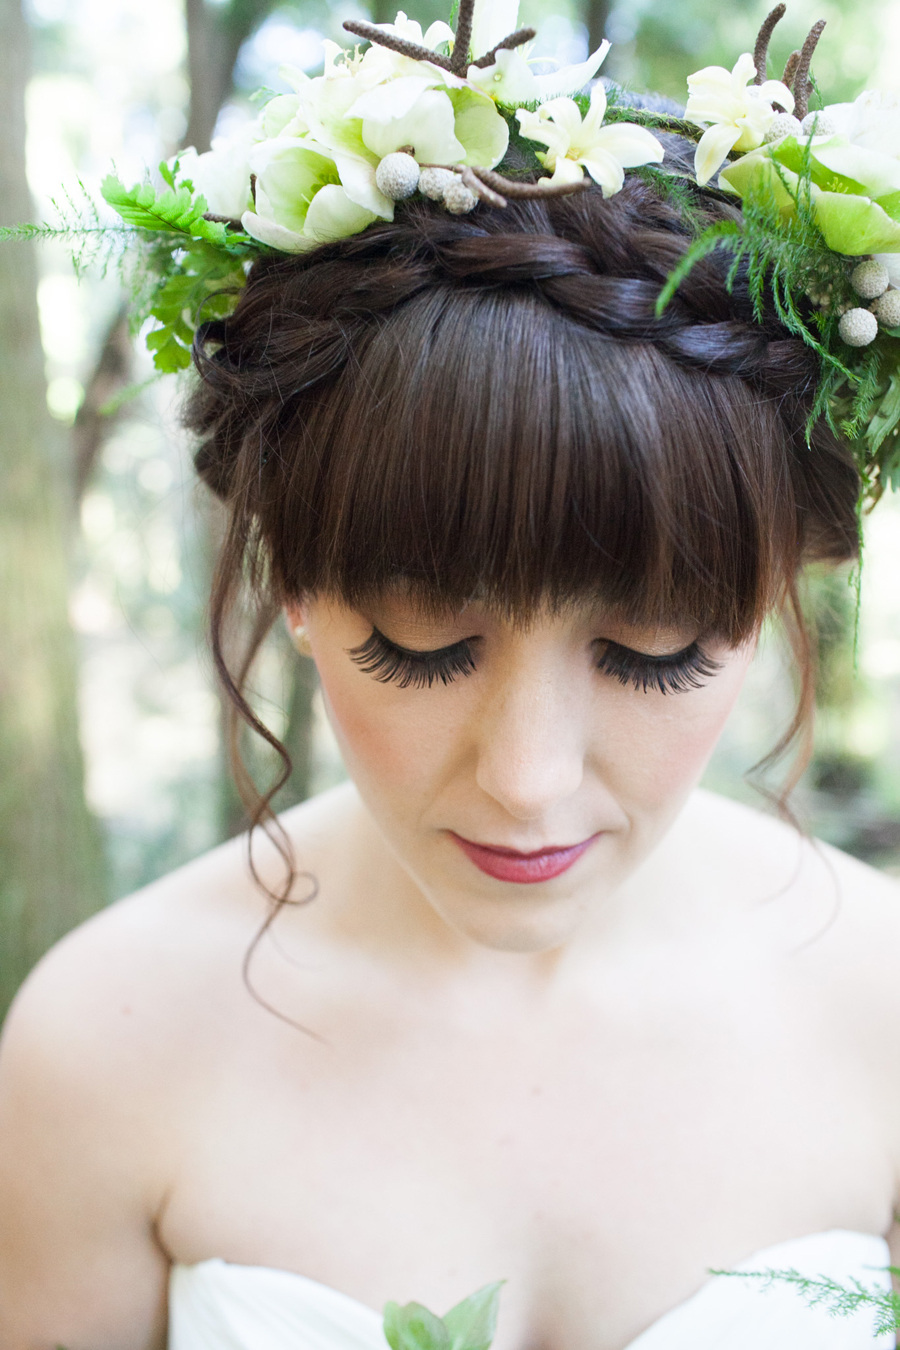 010-pacific-northwest-woodland-bridal-styled-session-lynden-washington-katheryn-moran-photography.jpg